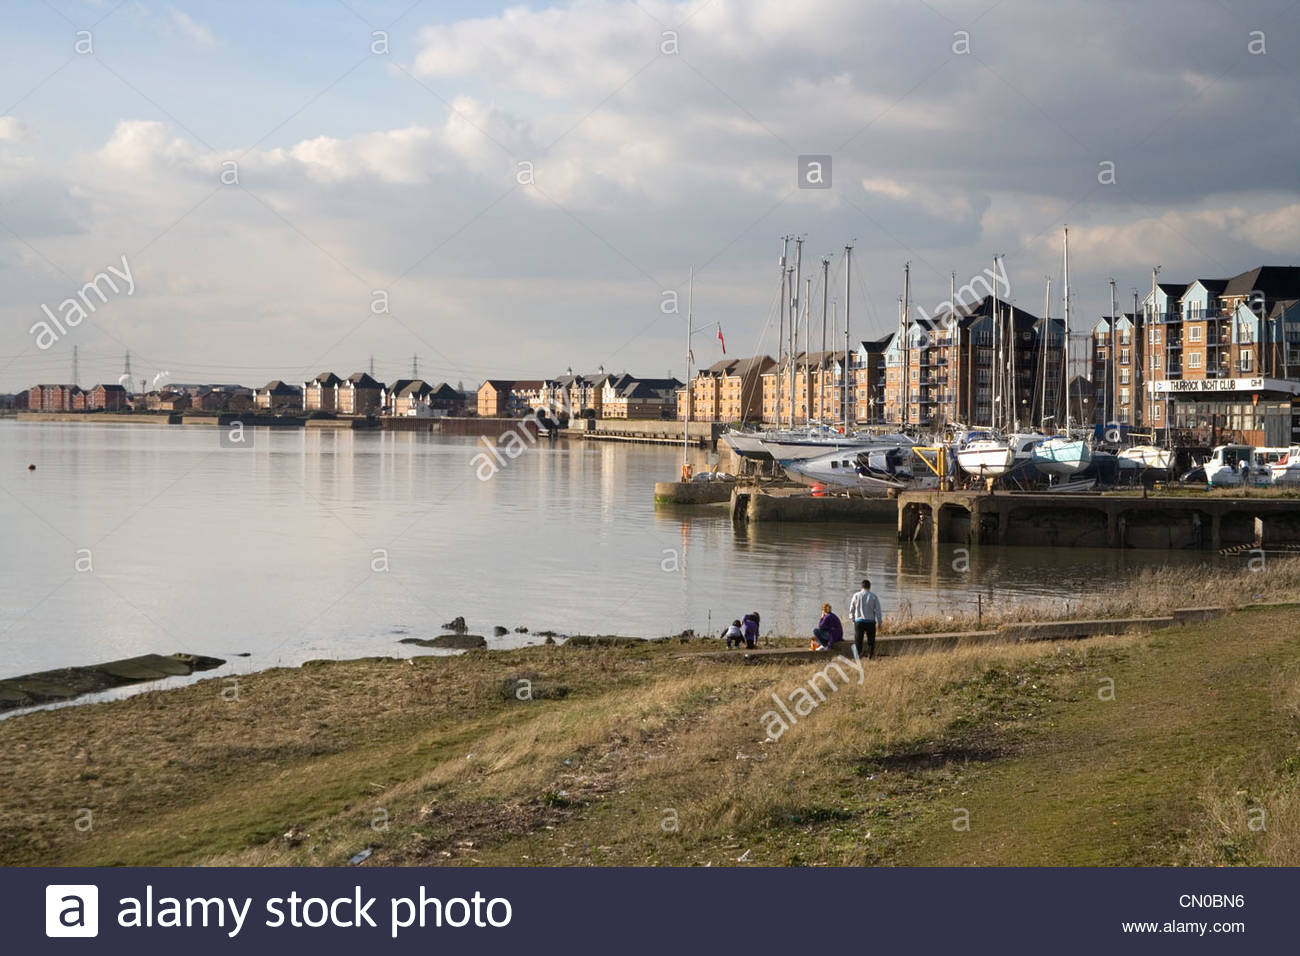 apartments at grays on the north bank or the thames in London - Stock Image